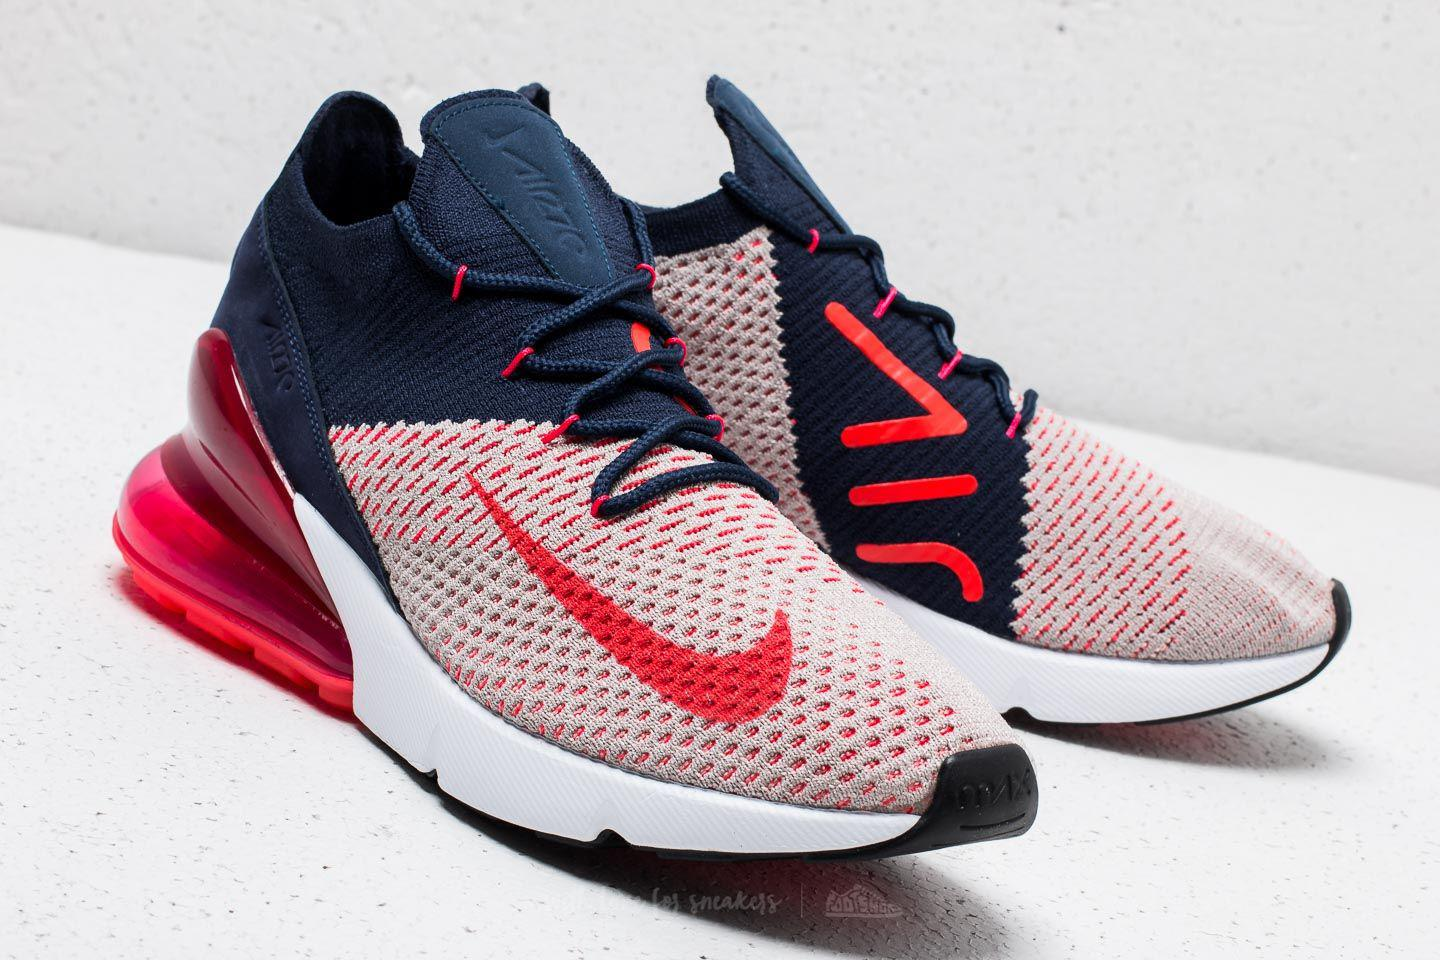 42d03a557d nike air max 270 red orbit Lyst - Nike Wmns Air Max 270 Flyknit Moon  Particle